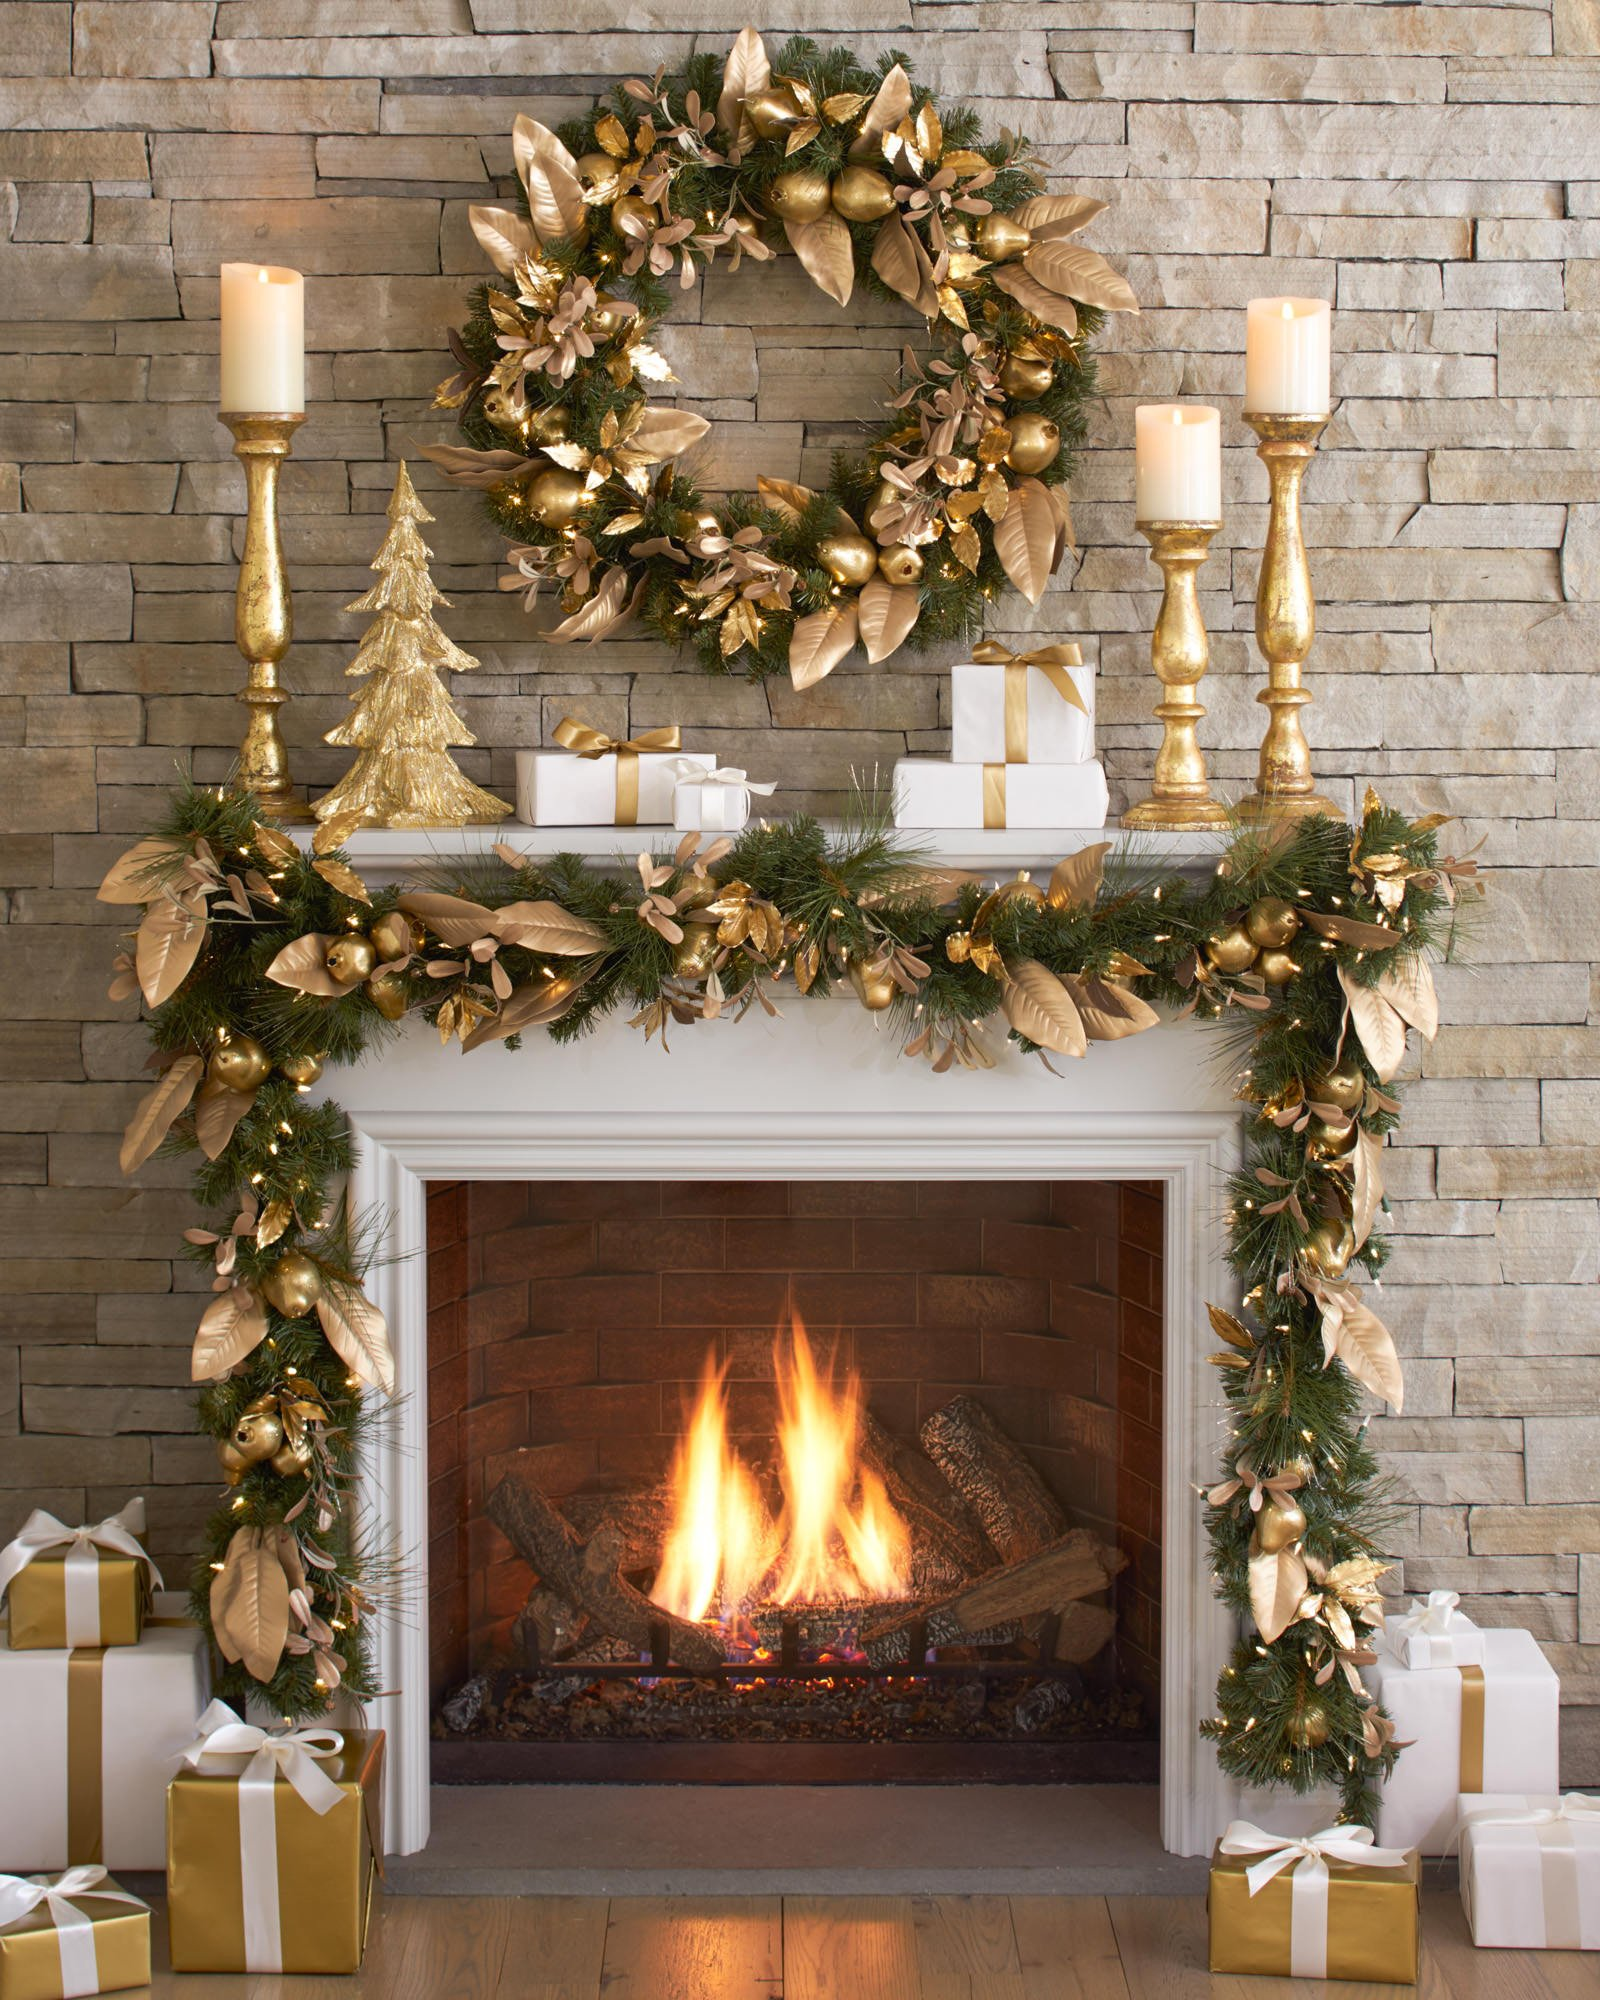 Christmas Decor for Fireplace Mantels Unique 50 Christmas Mantles for some Serious Decorating Inspiration